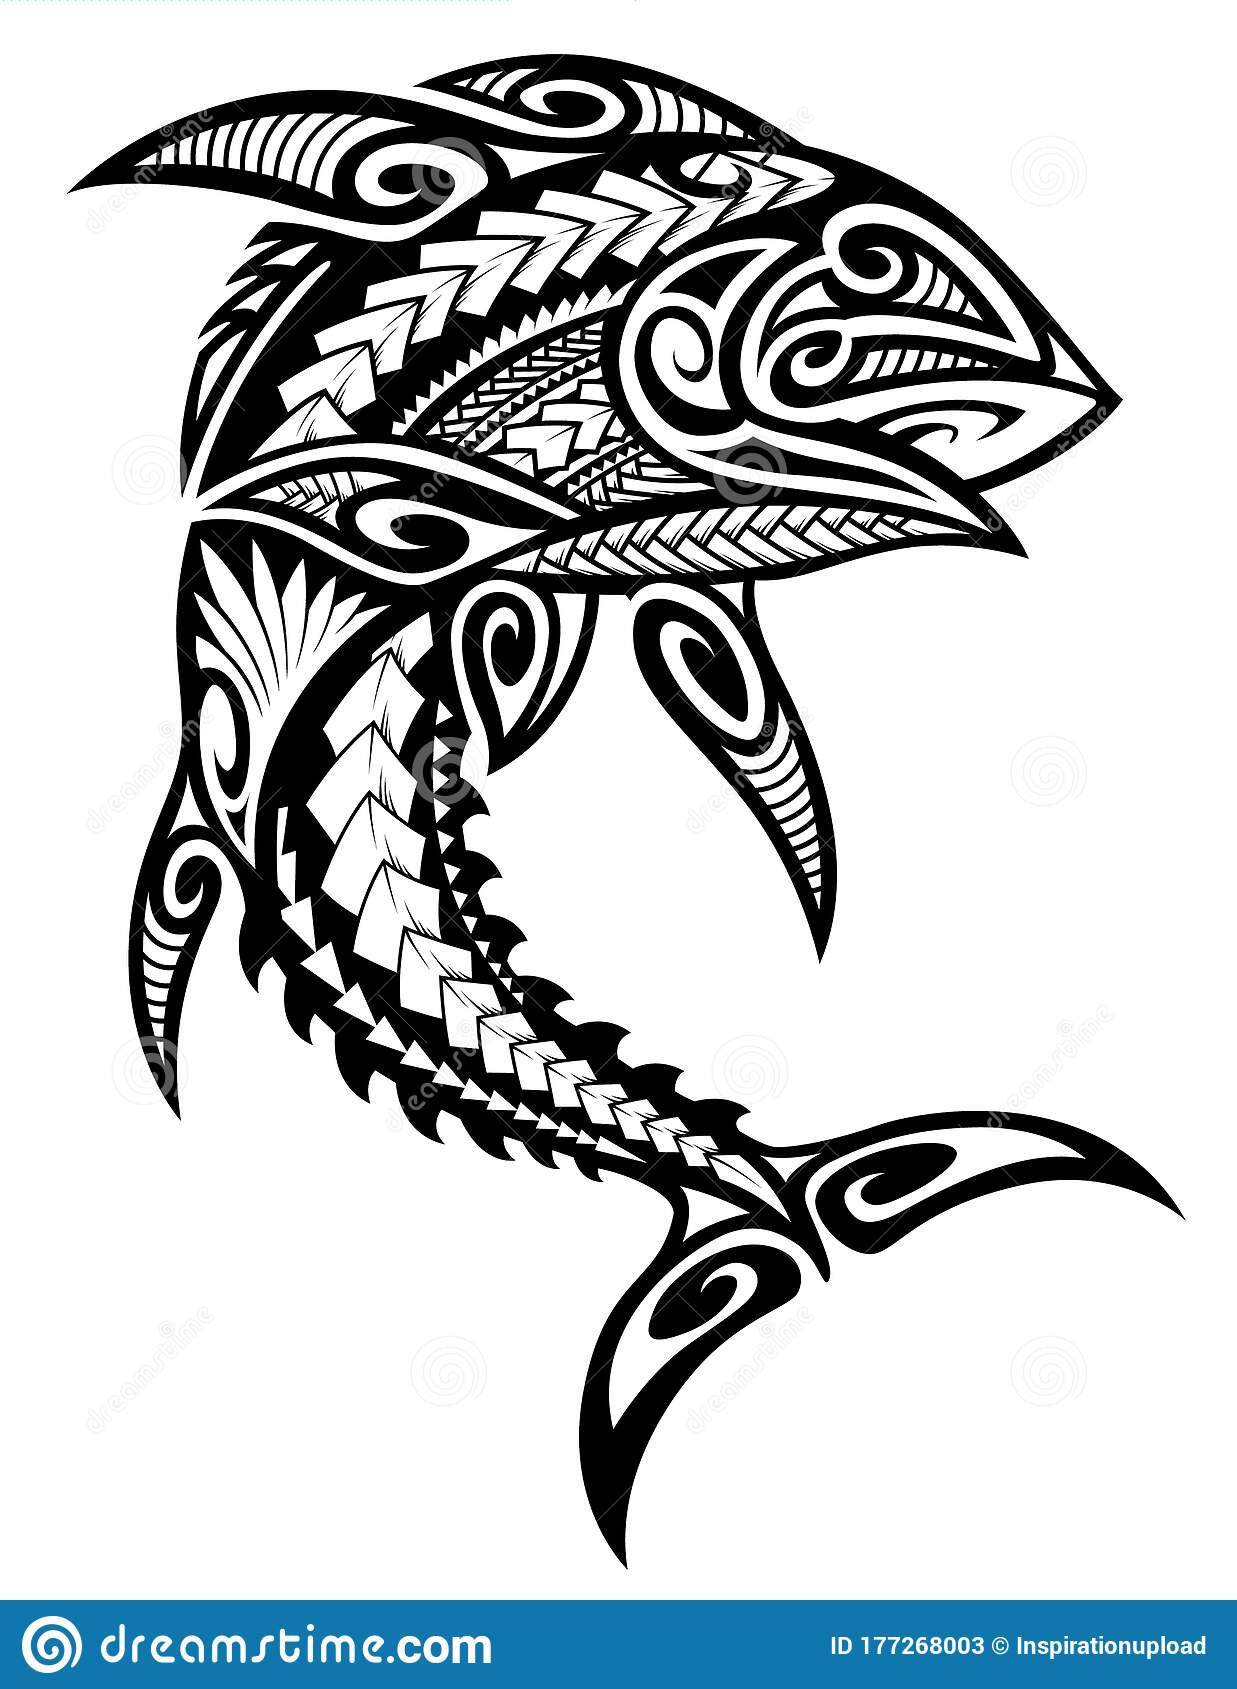 tribal tuna fish polynesian design stock vector illustration of tattoo hawaiian 177268003 dreamstime com